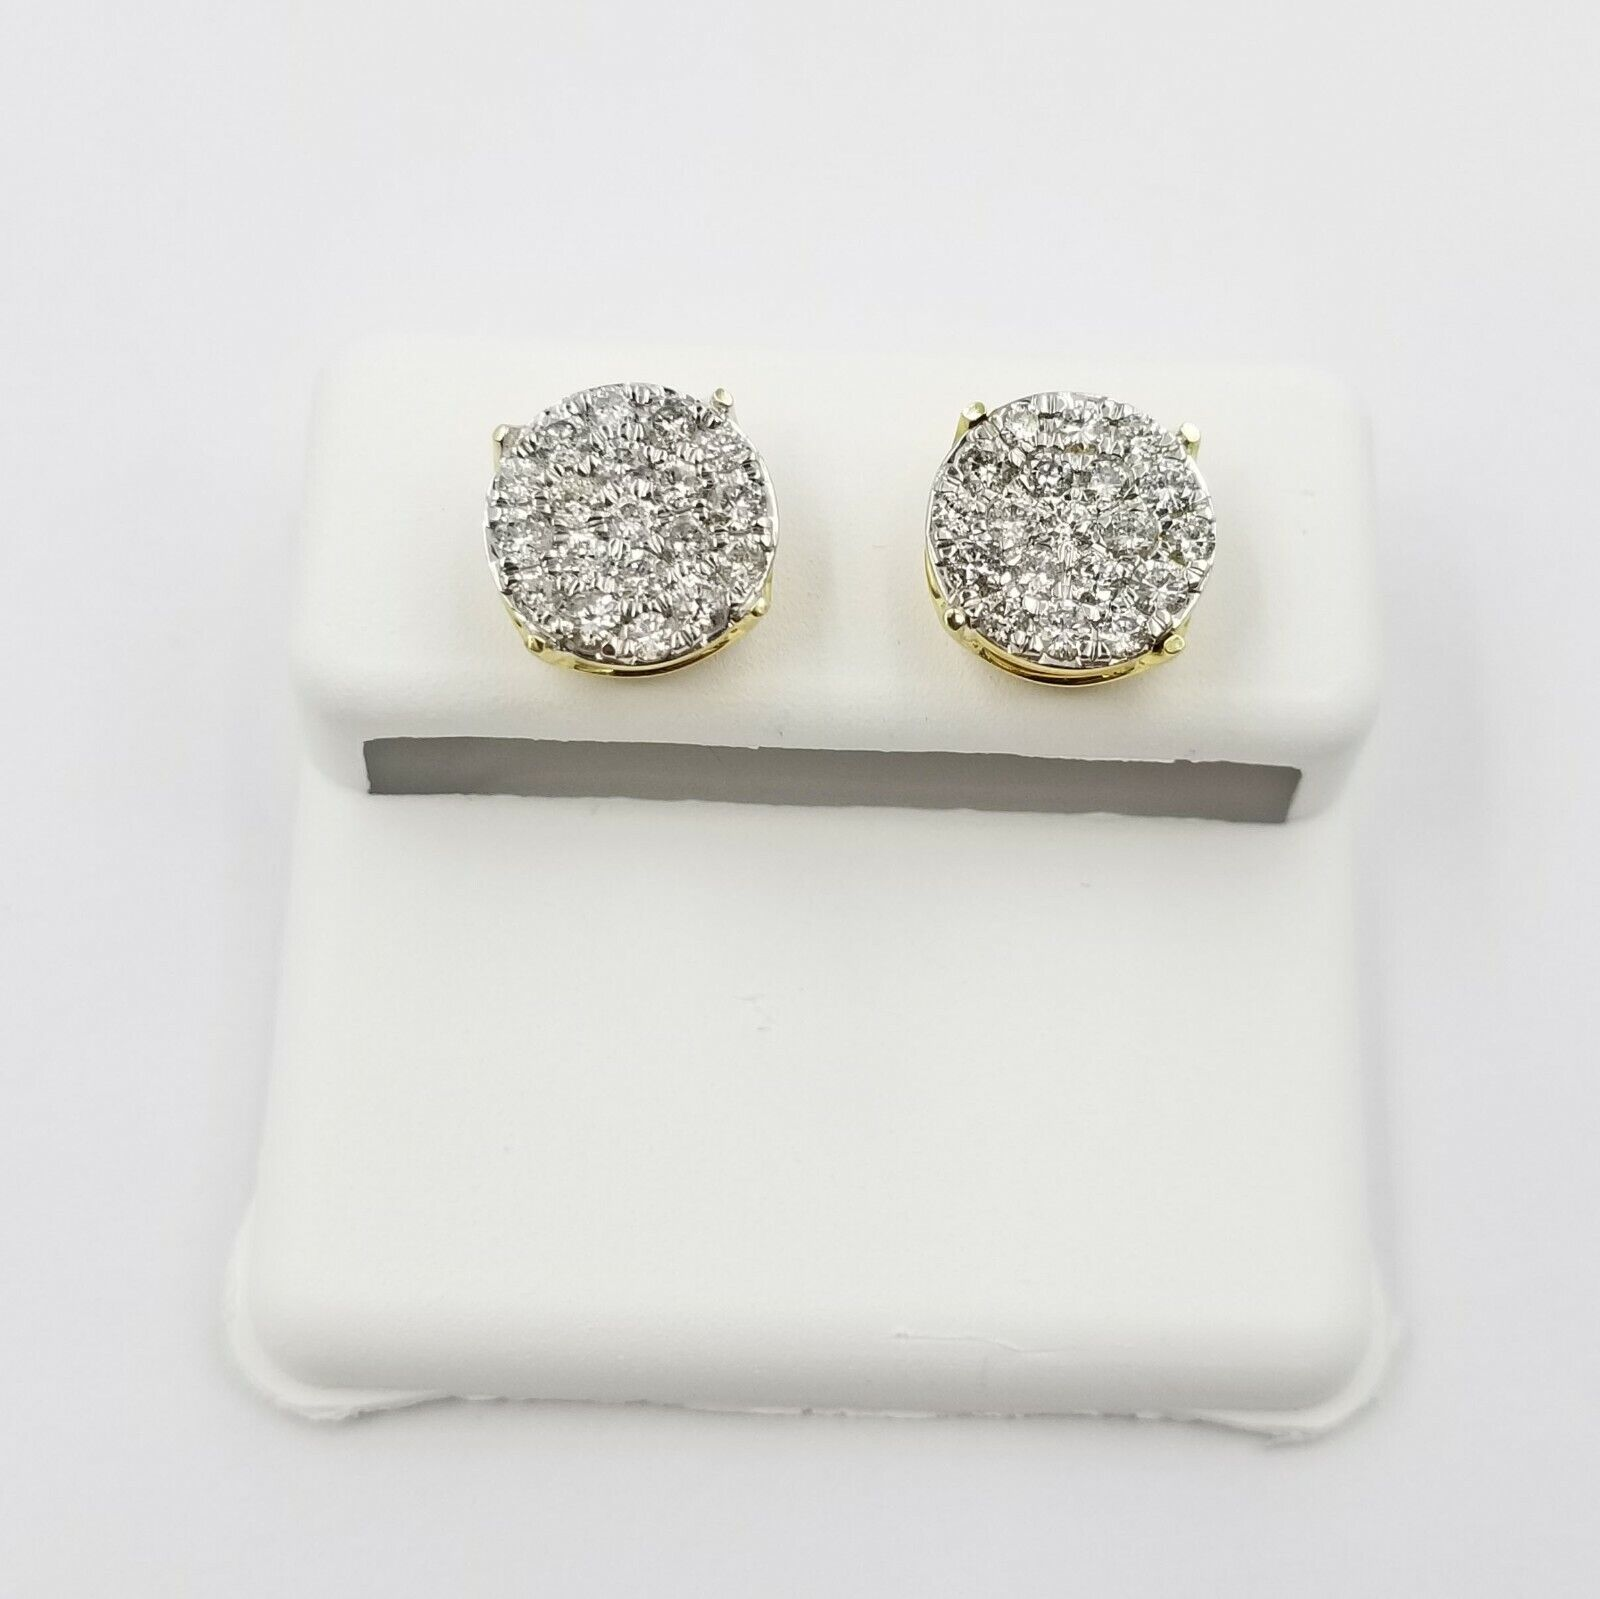 10k Real Yellow Gold Round Stud Diamond Earring 9mm 0.88CT For Women